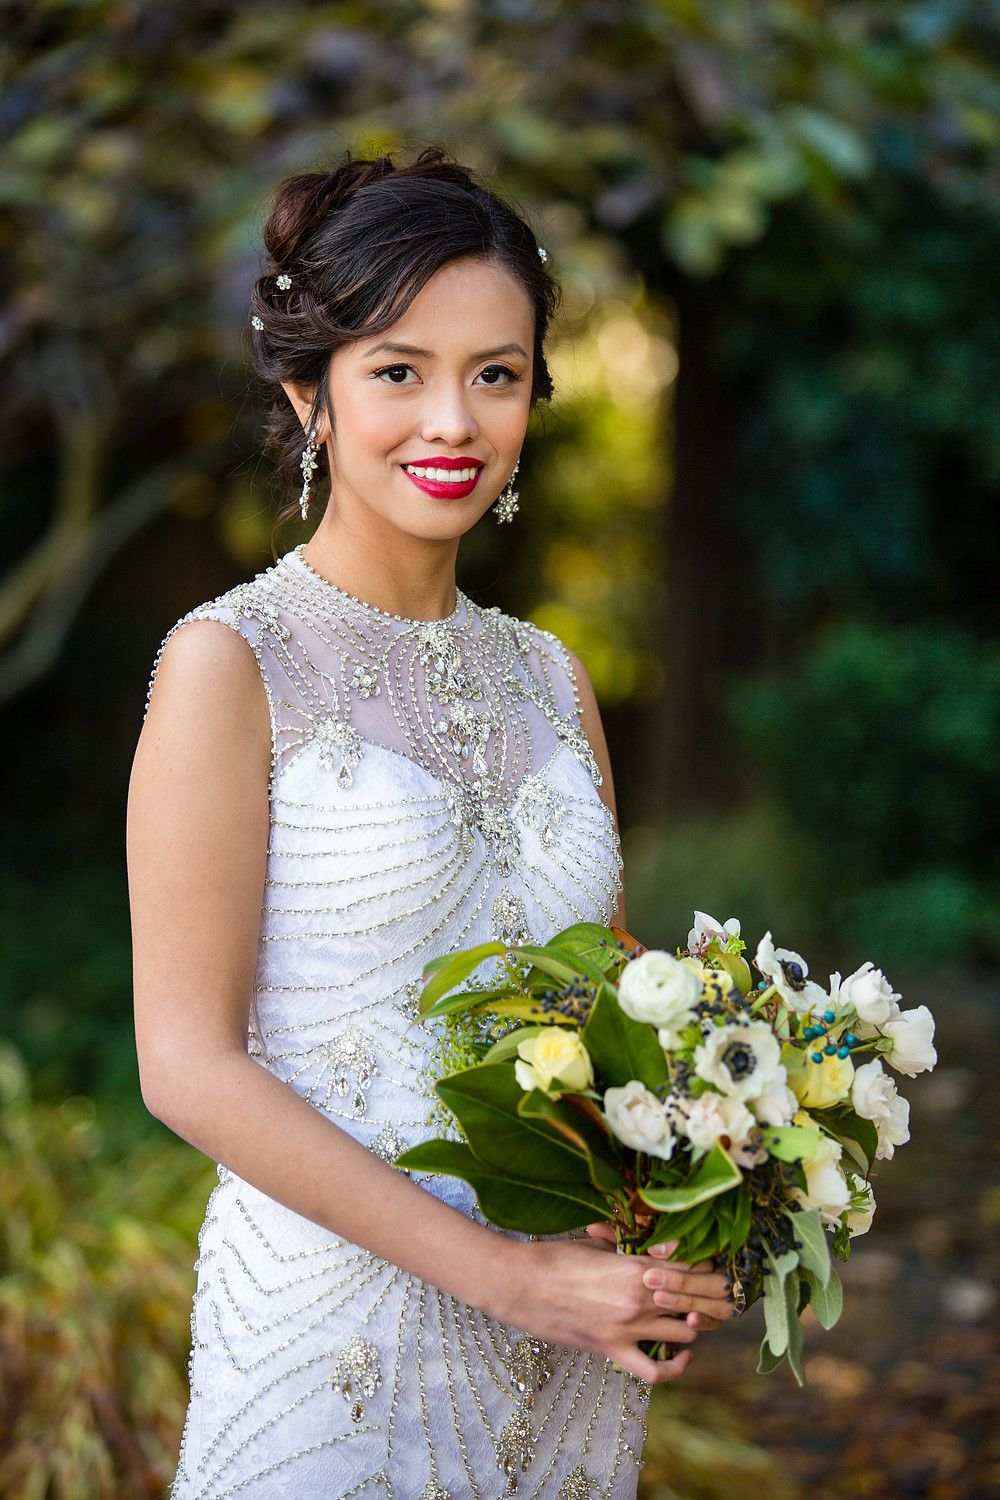 seattle wedding for asian bride , on demand hair in california and